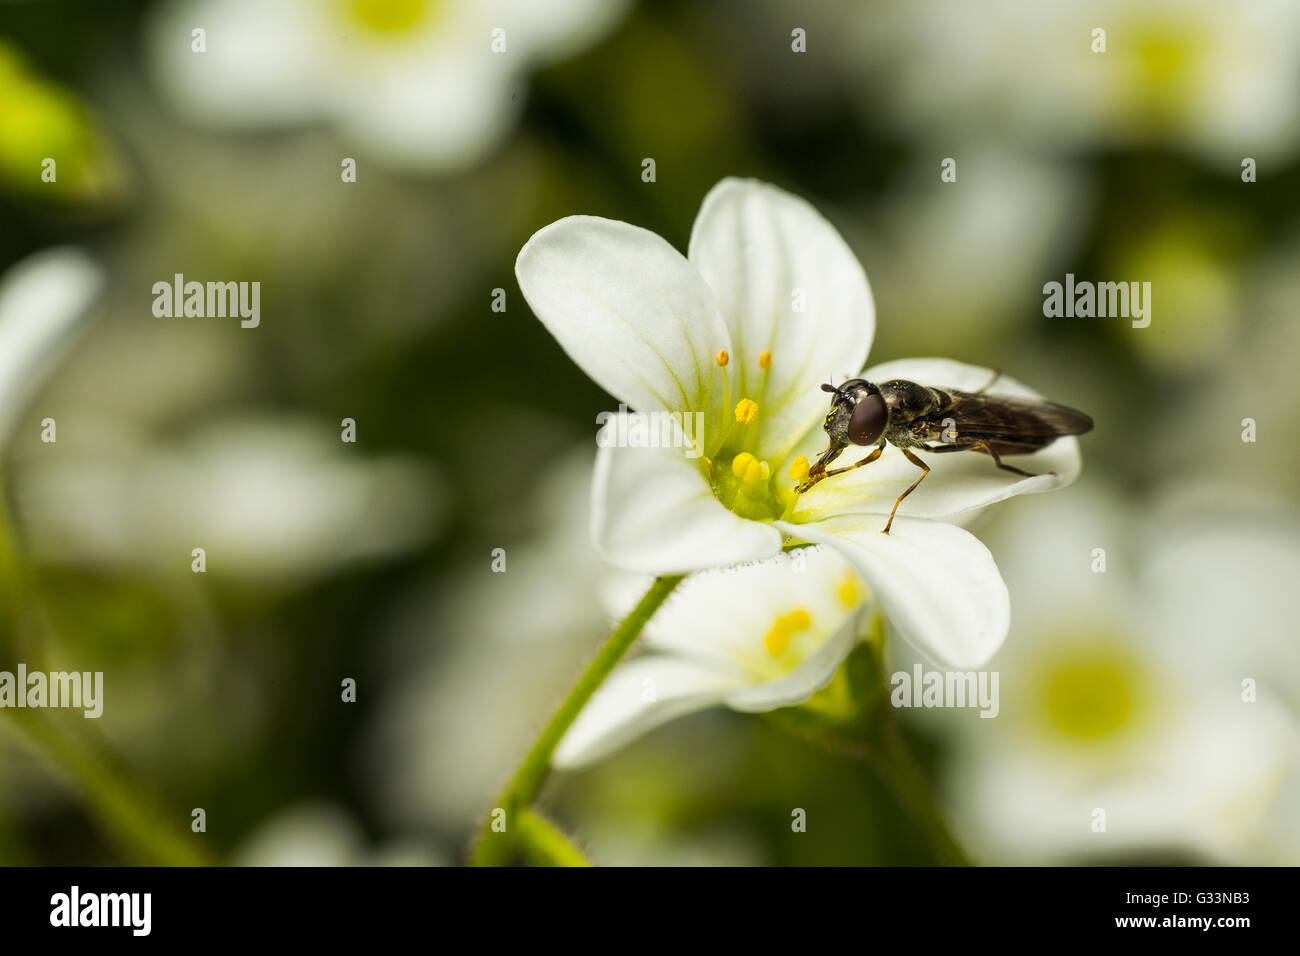 Close up of Bee Syrphe insect collecting bee pollen from white Saxifraga flower - Stock Image